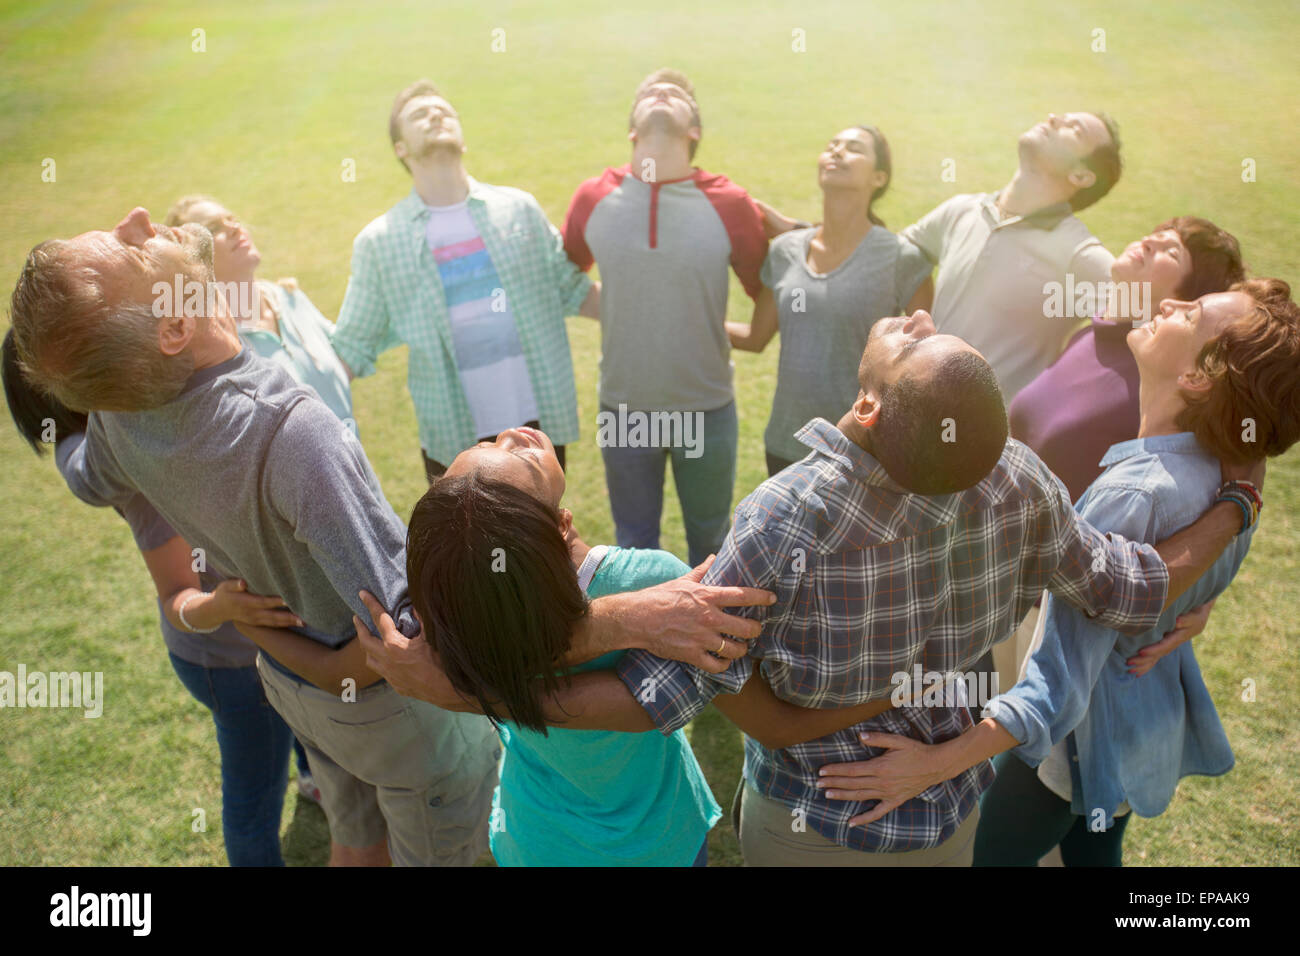 team connected circle basking sunny field - Stock Image